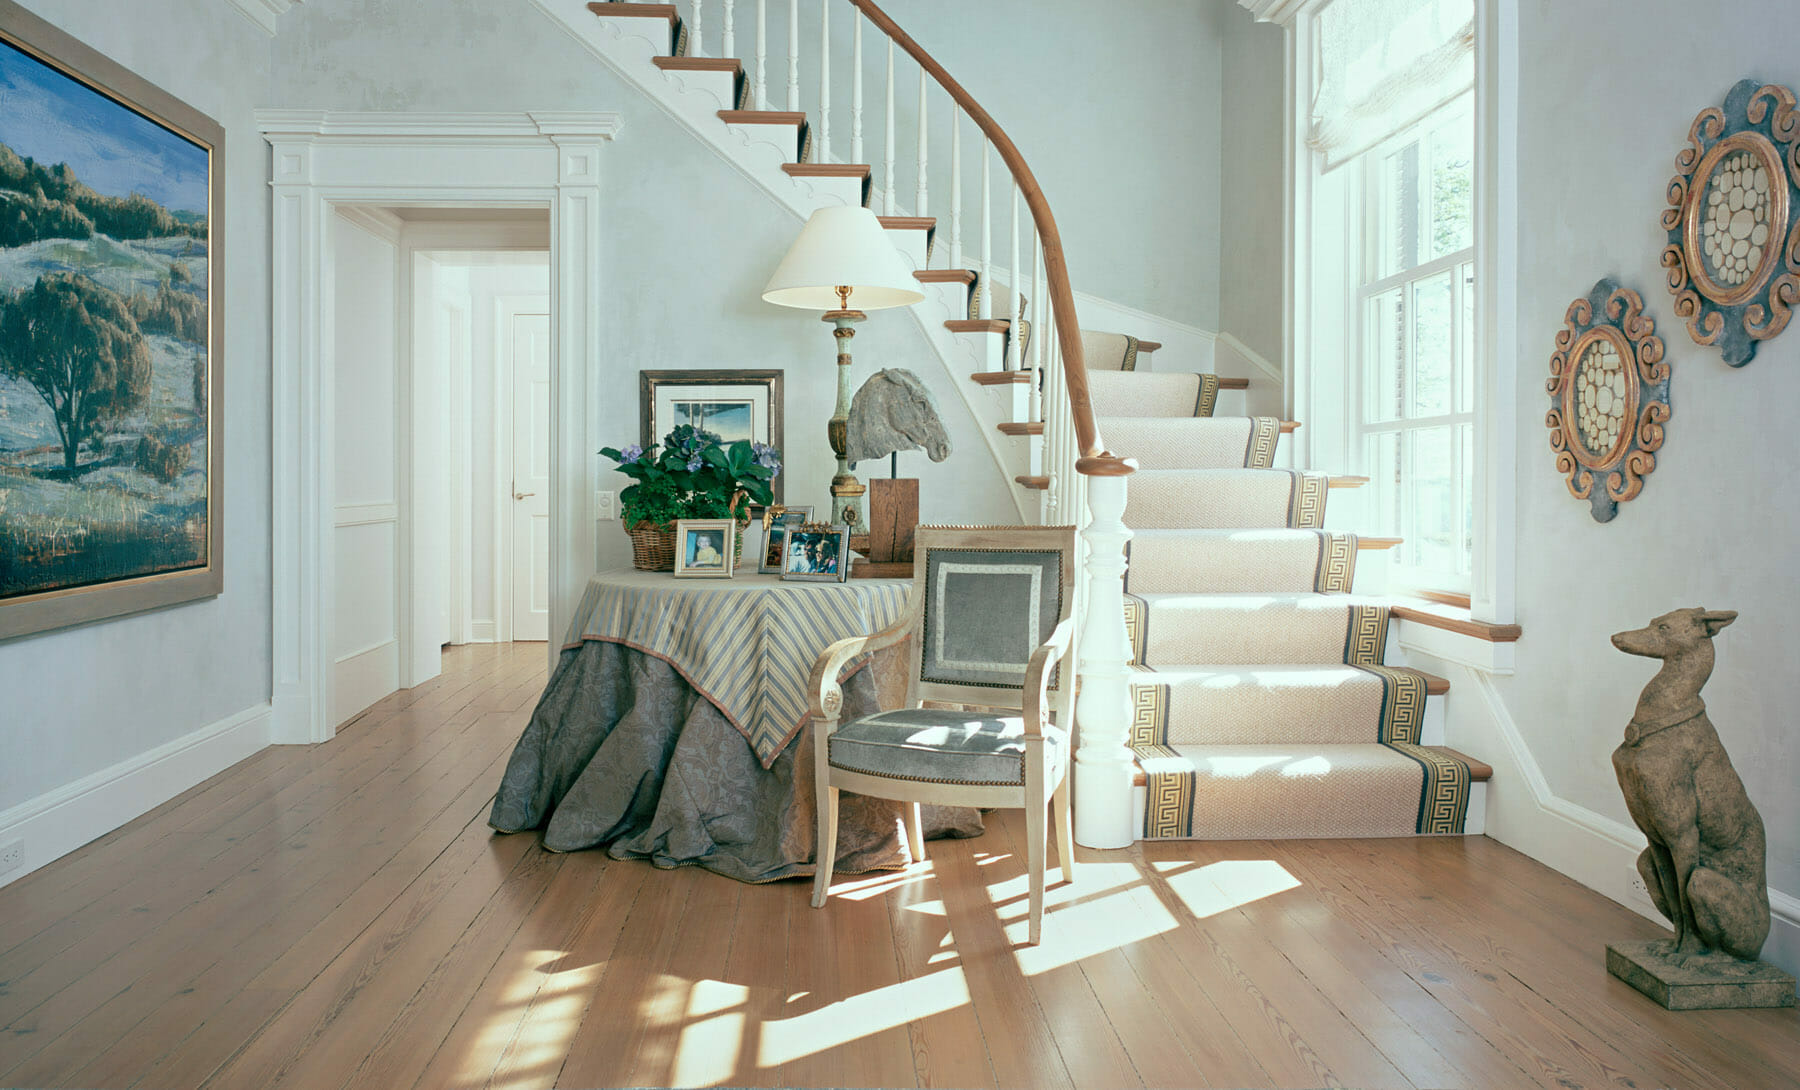 Winding staircase with wooden banister and wood floors with natural sunlight in Charlottesville, Virginia.